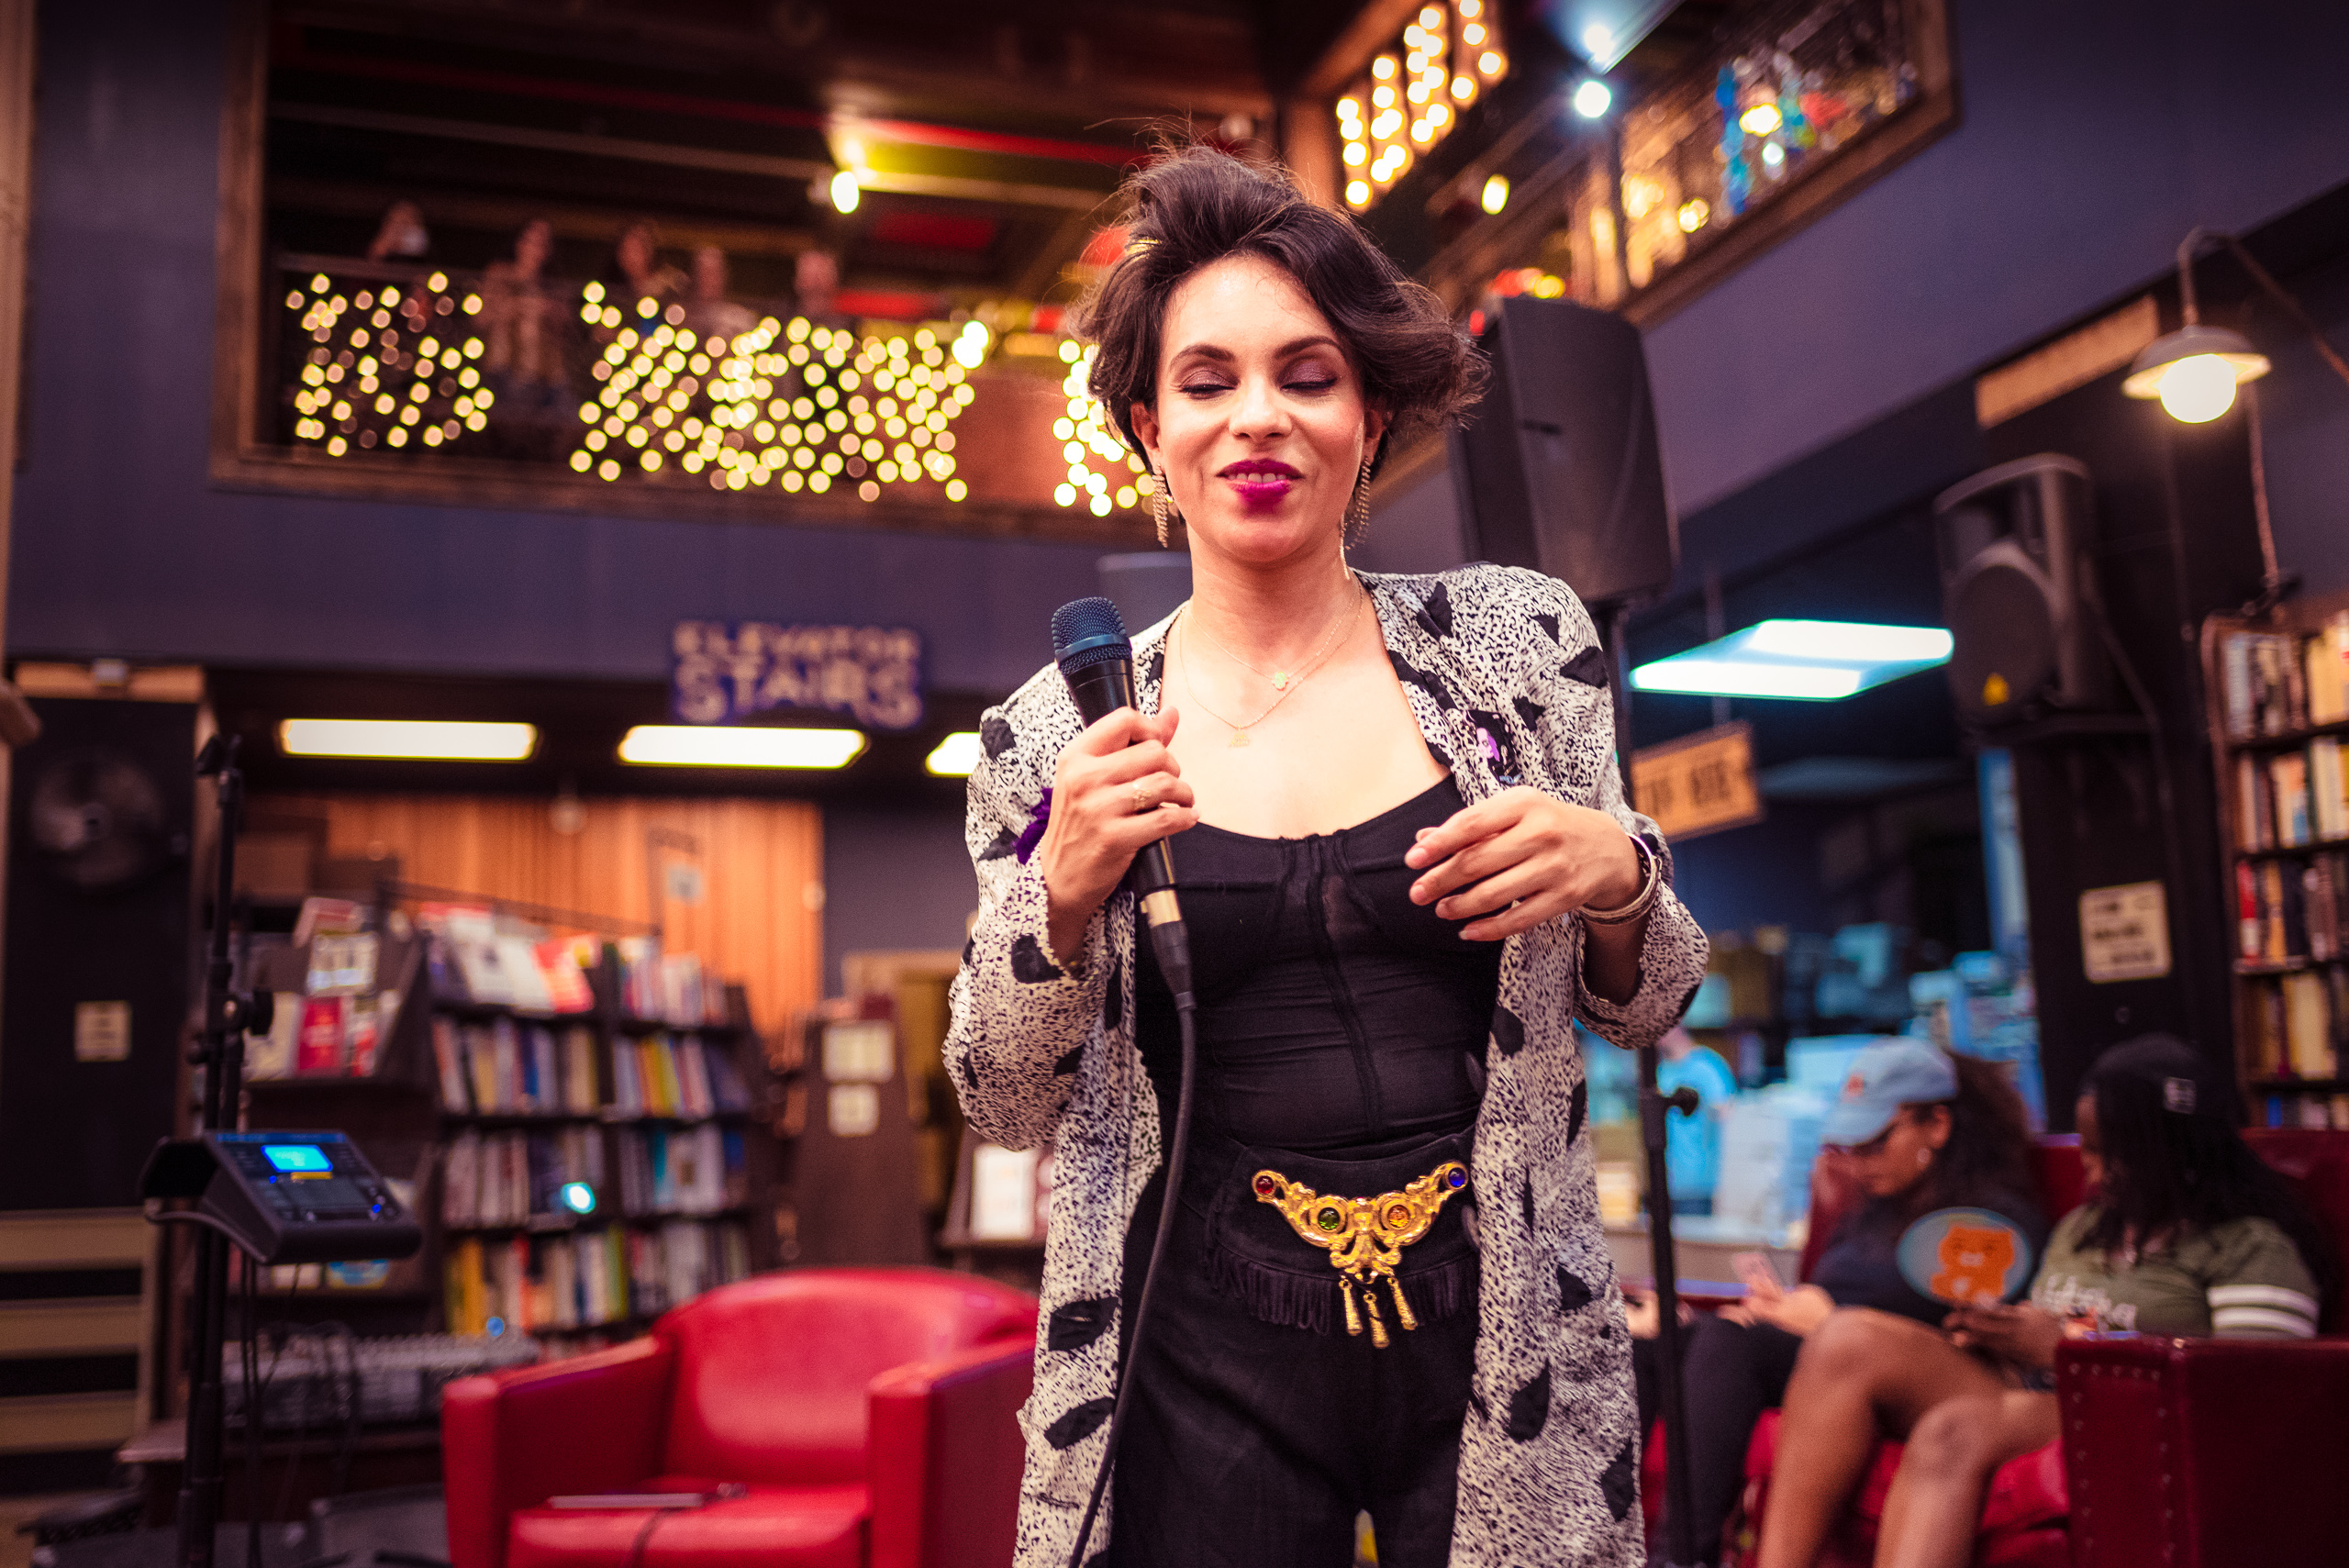 Joanna Rose singing at The Last Bookstore in Downtown Los Angeles